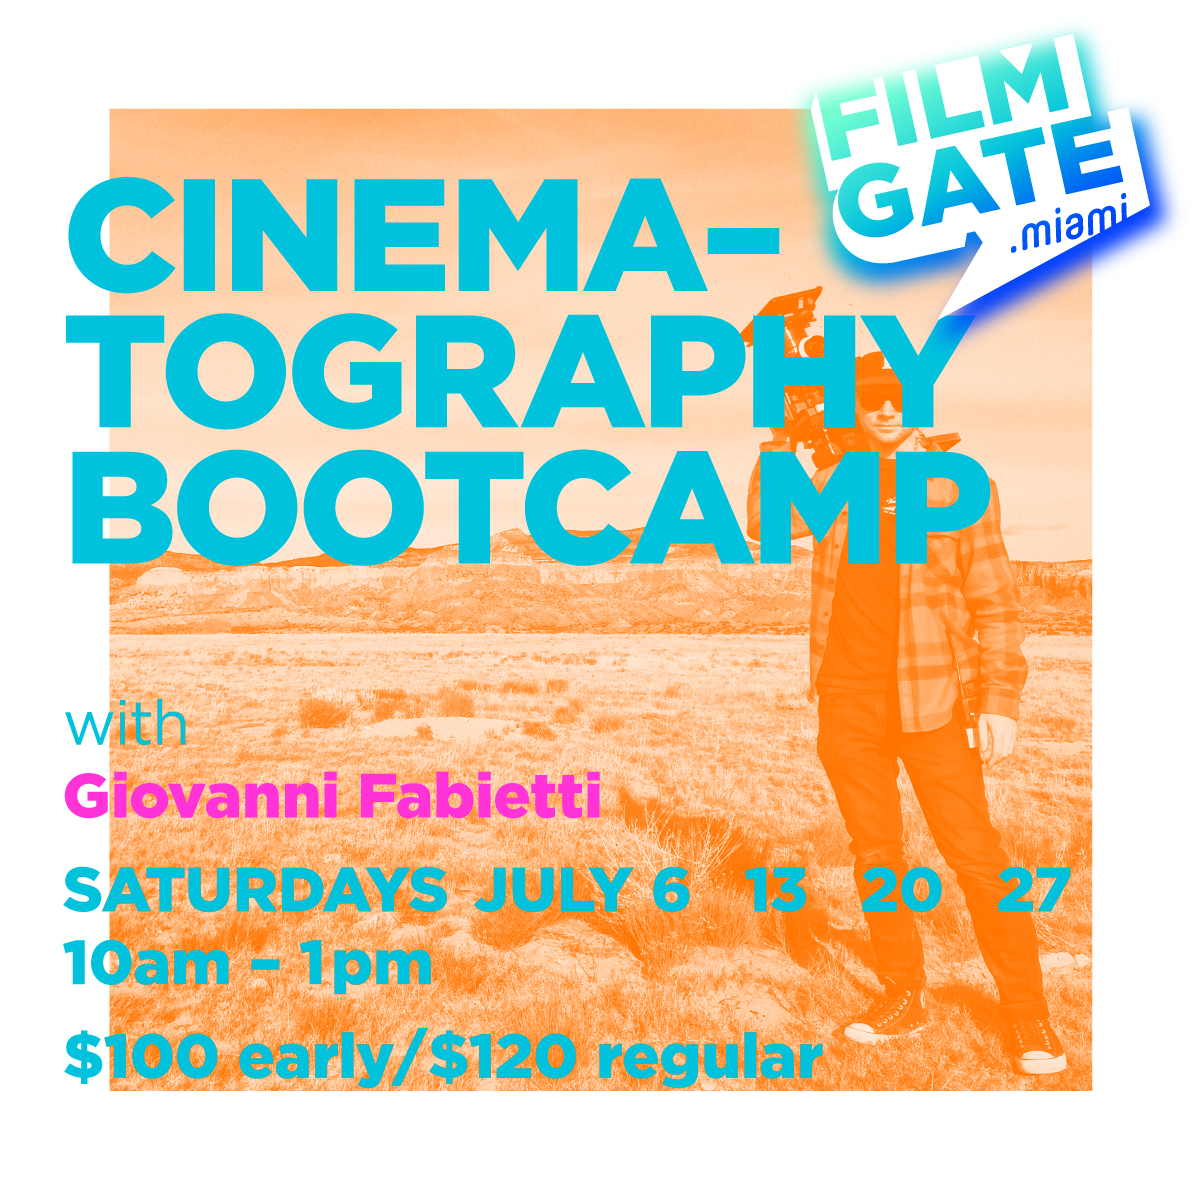 FG_CINEMATOGRAPHY-BOOTCAMP_insta_JULY_1.jpg